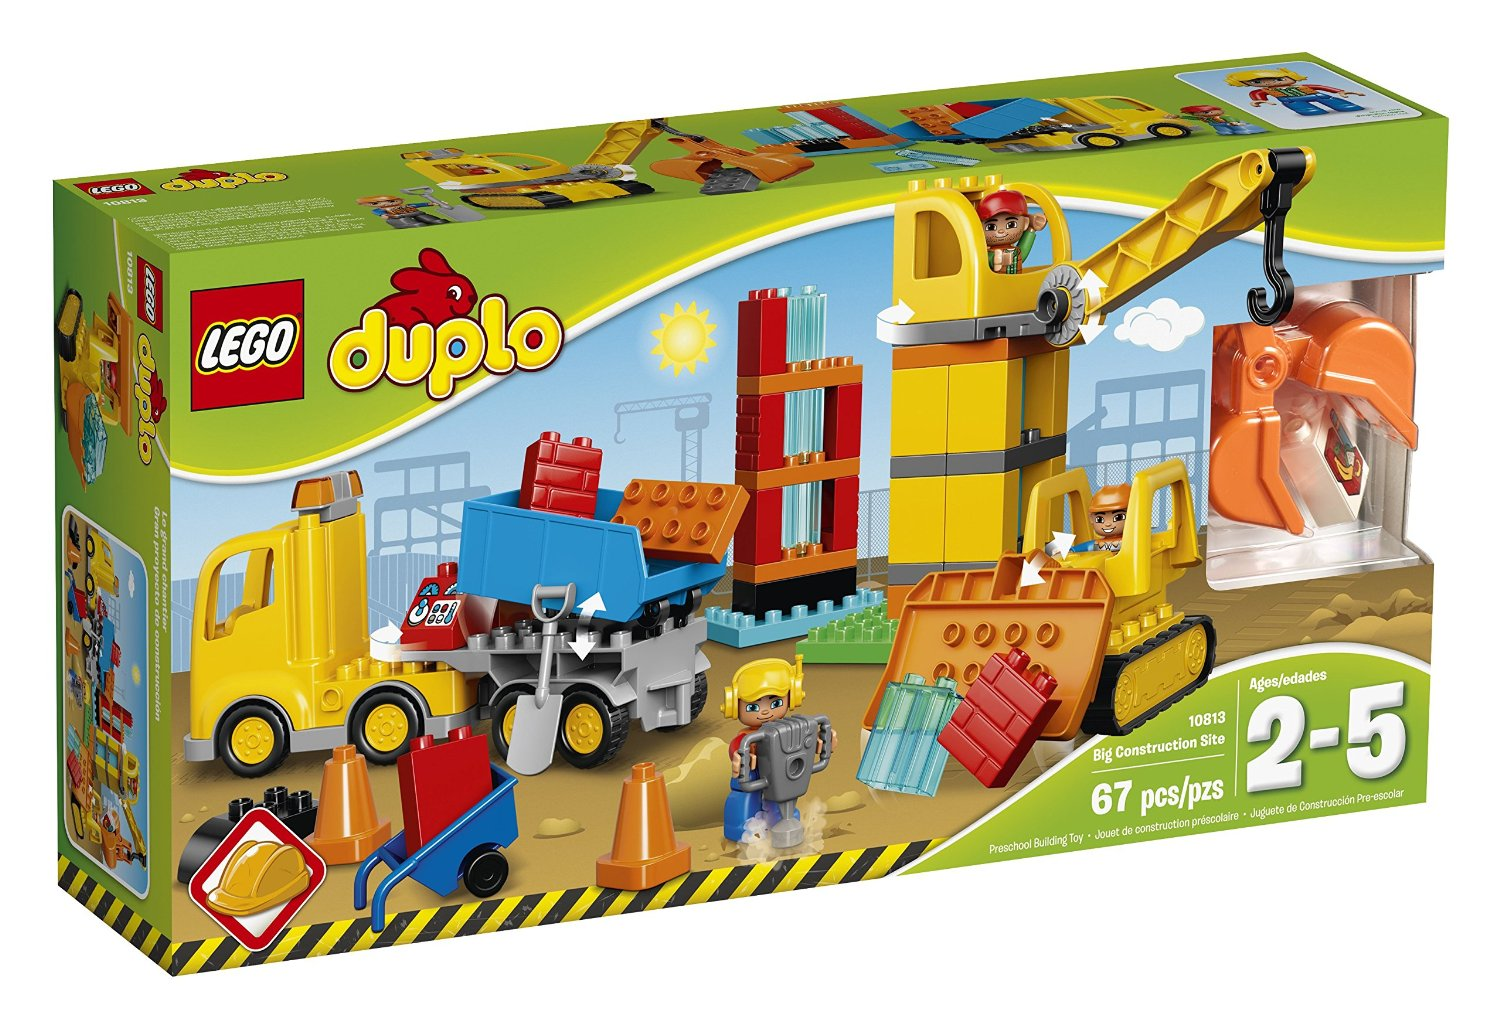 Construction Site Toys For Boys : Lego duplo big construction site